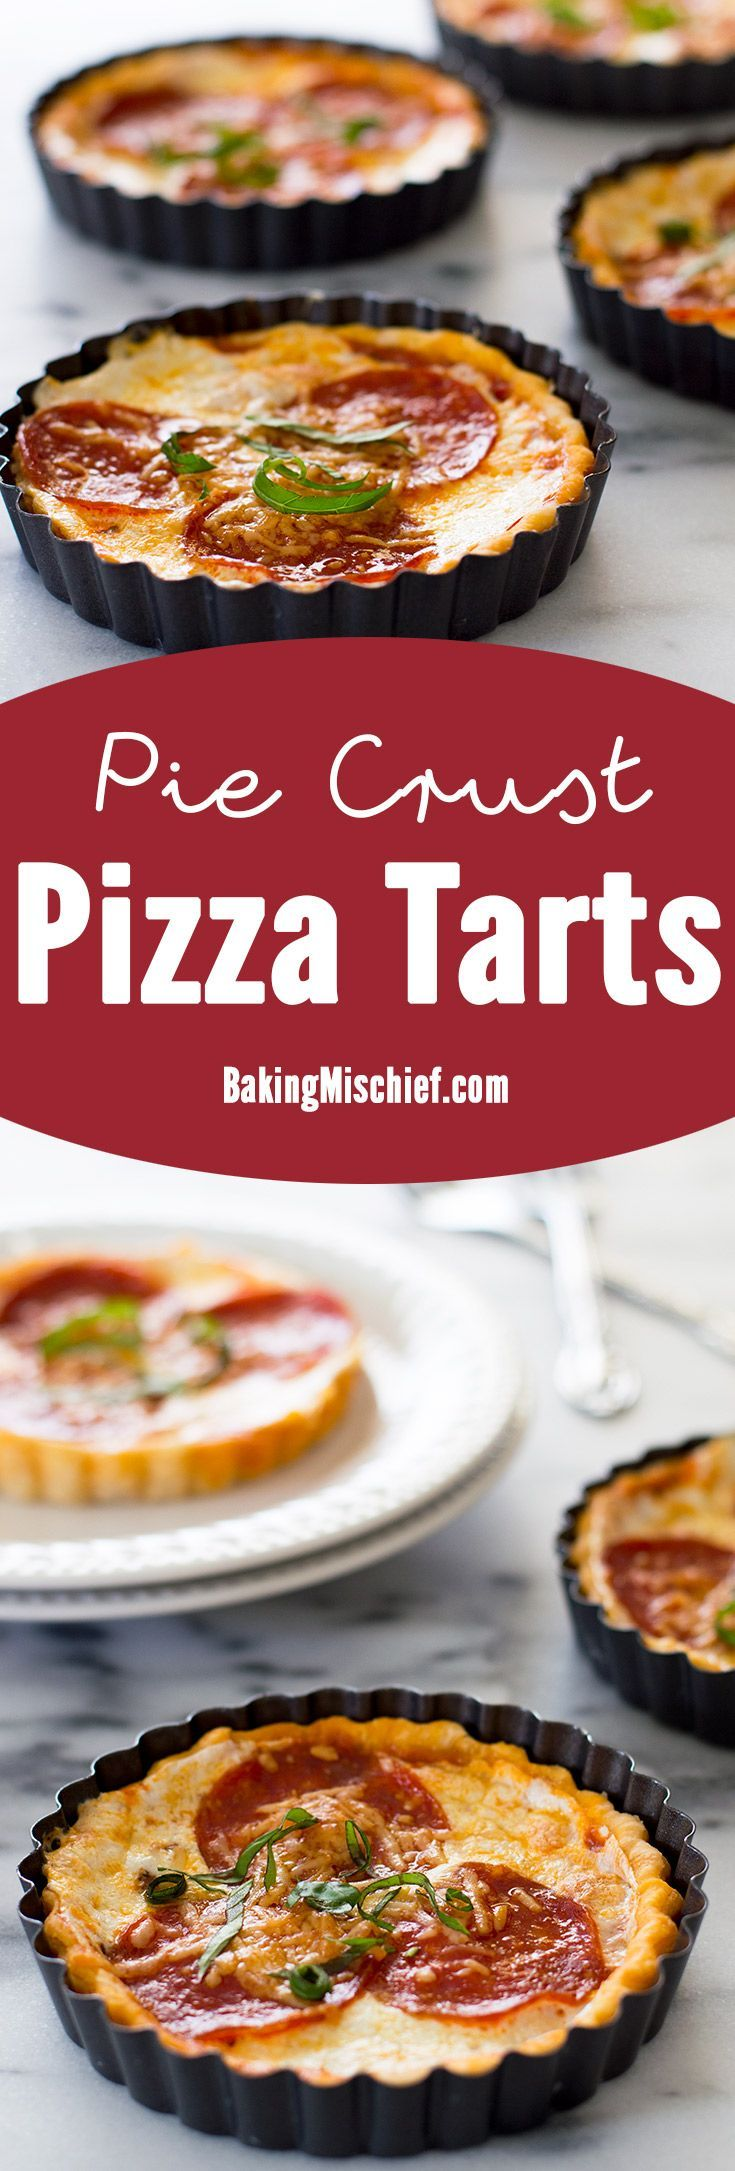 The cutest mini pizza tarts baked in a delicious buttermilk pie crust tart shell. Recipe contains nutritional information. From http://BakingMischief.com